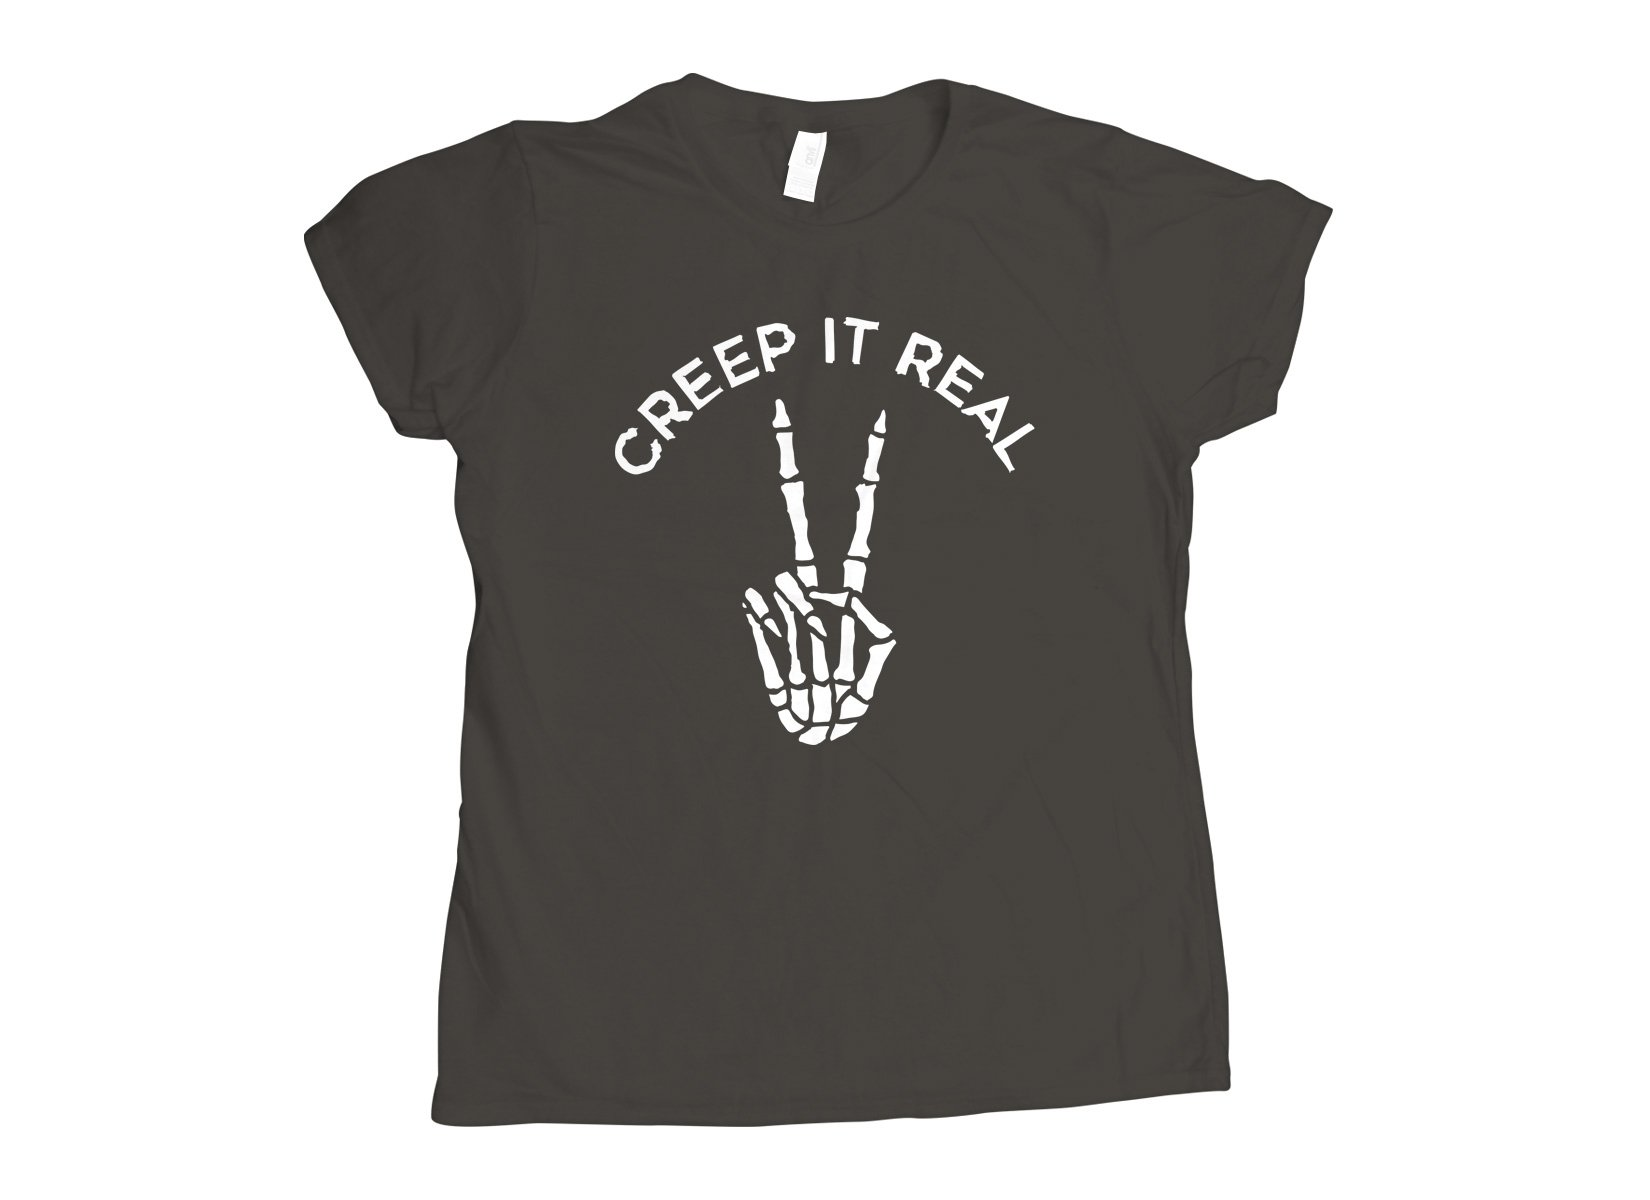 Creep It Real on Womens T-Shirt